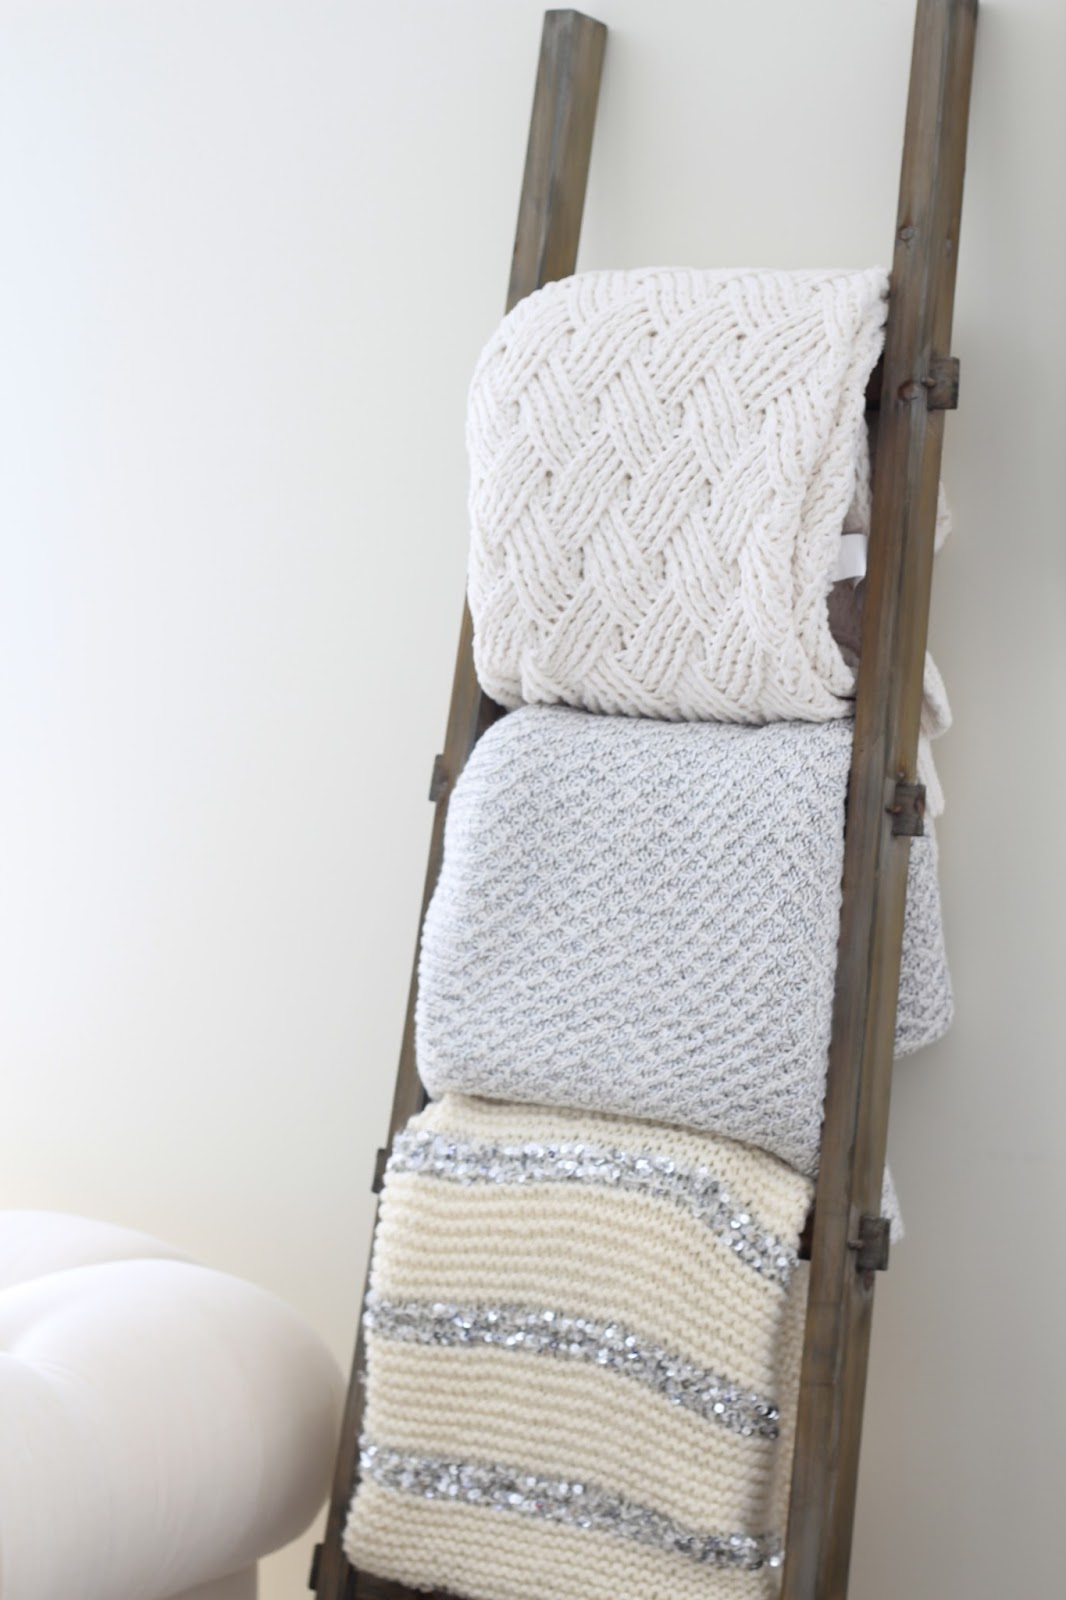 magnolia blanket ladder